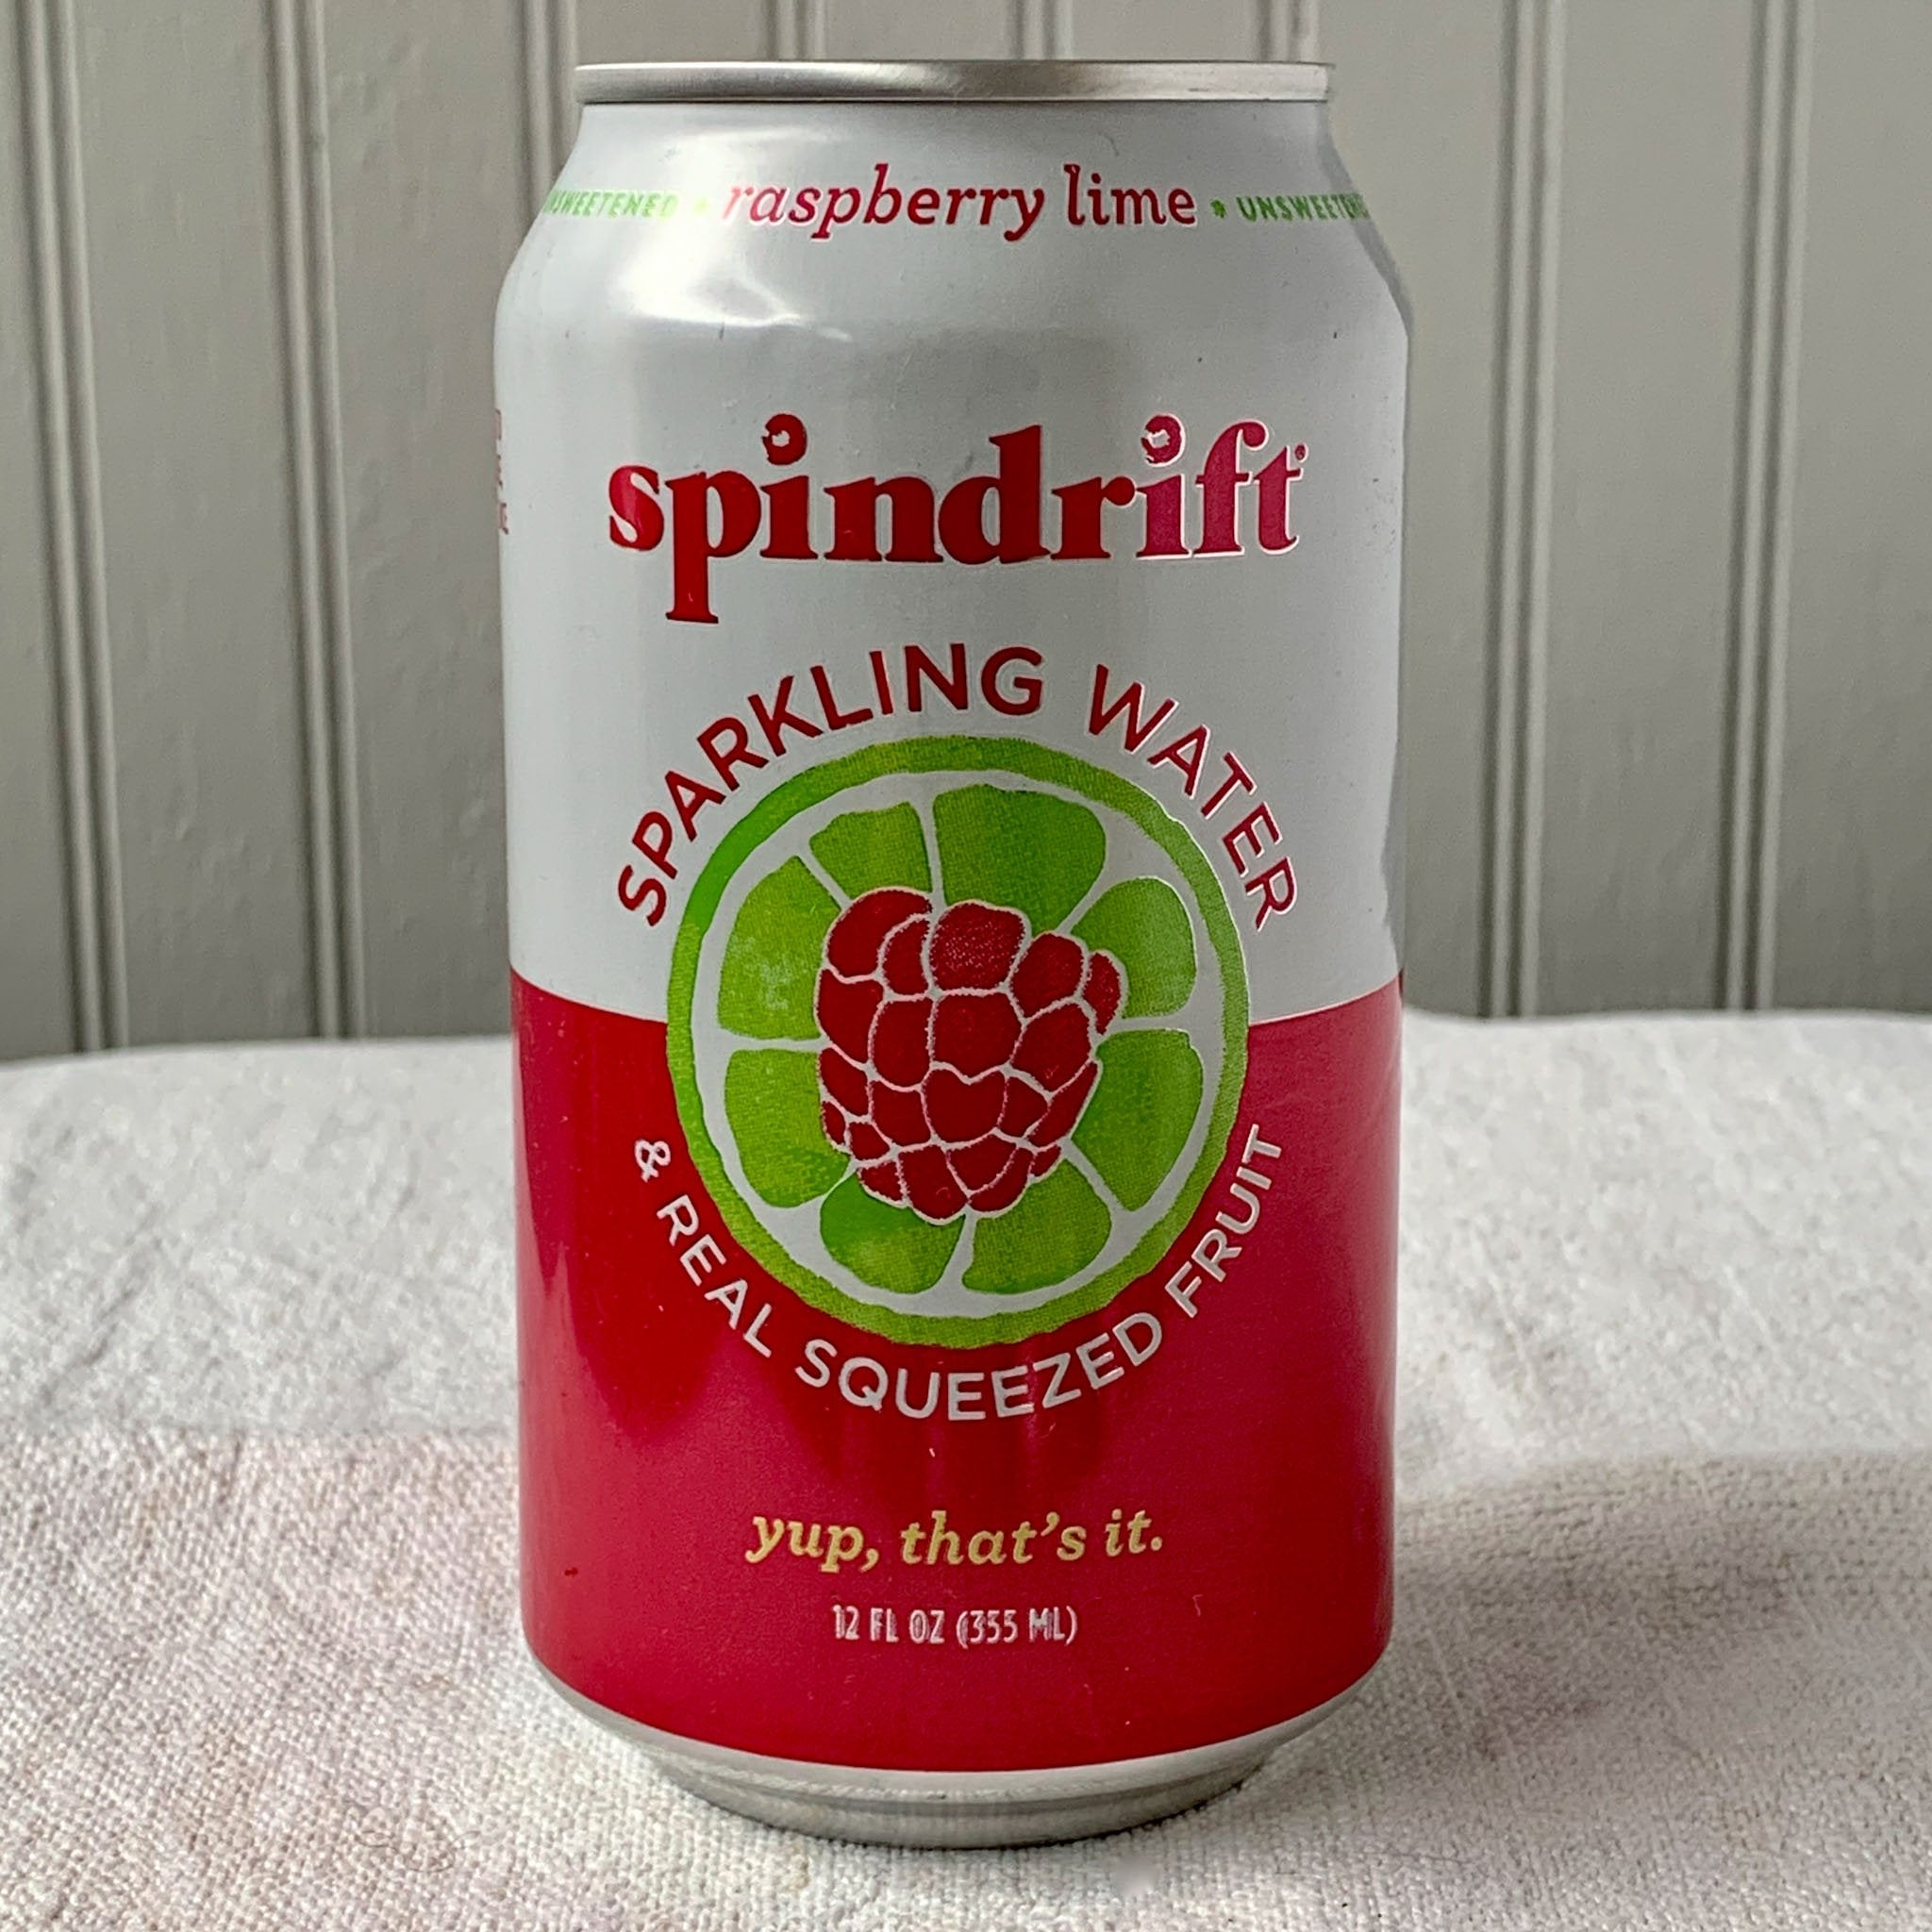 Spindrift Sparkling Water - Raspberry Lime